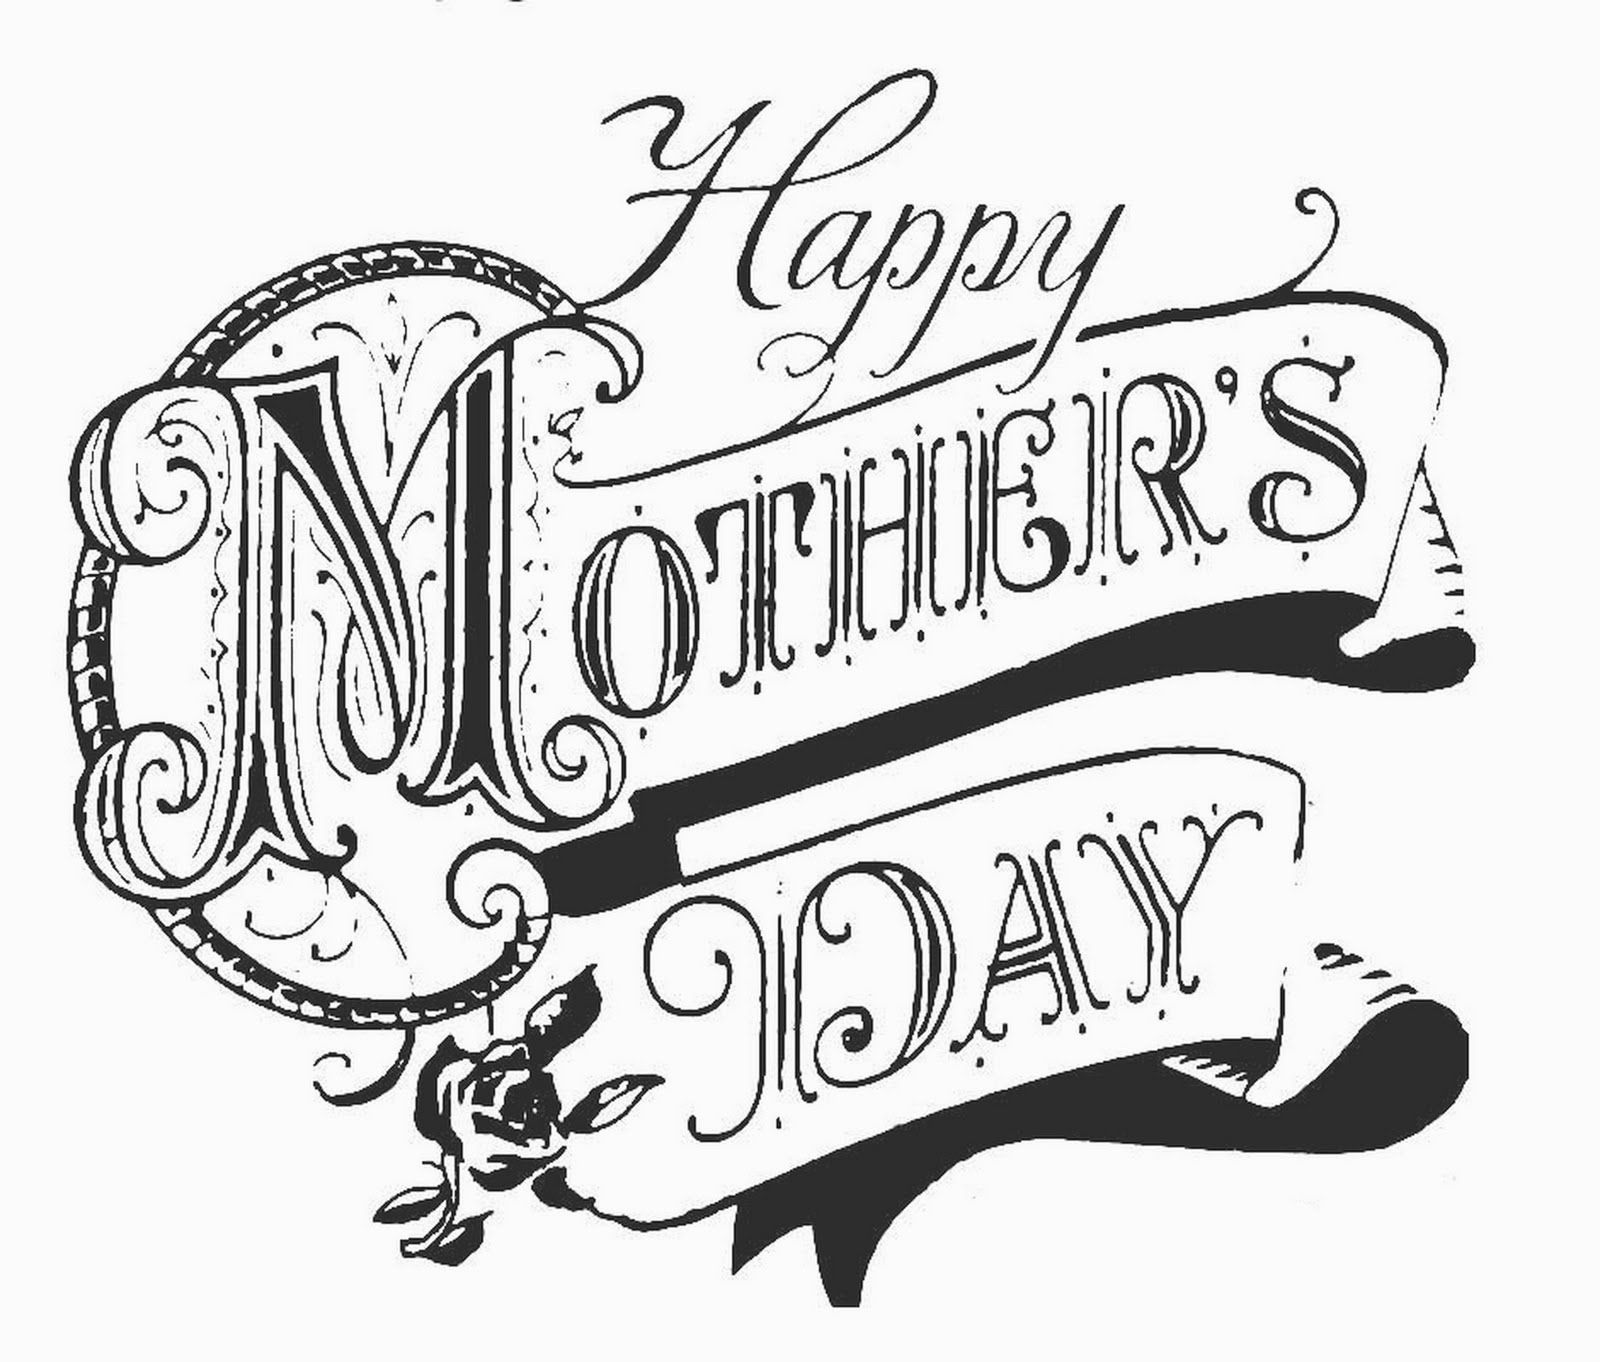 Free clipart mothers day black and white. Printable coloring pages for